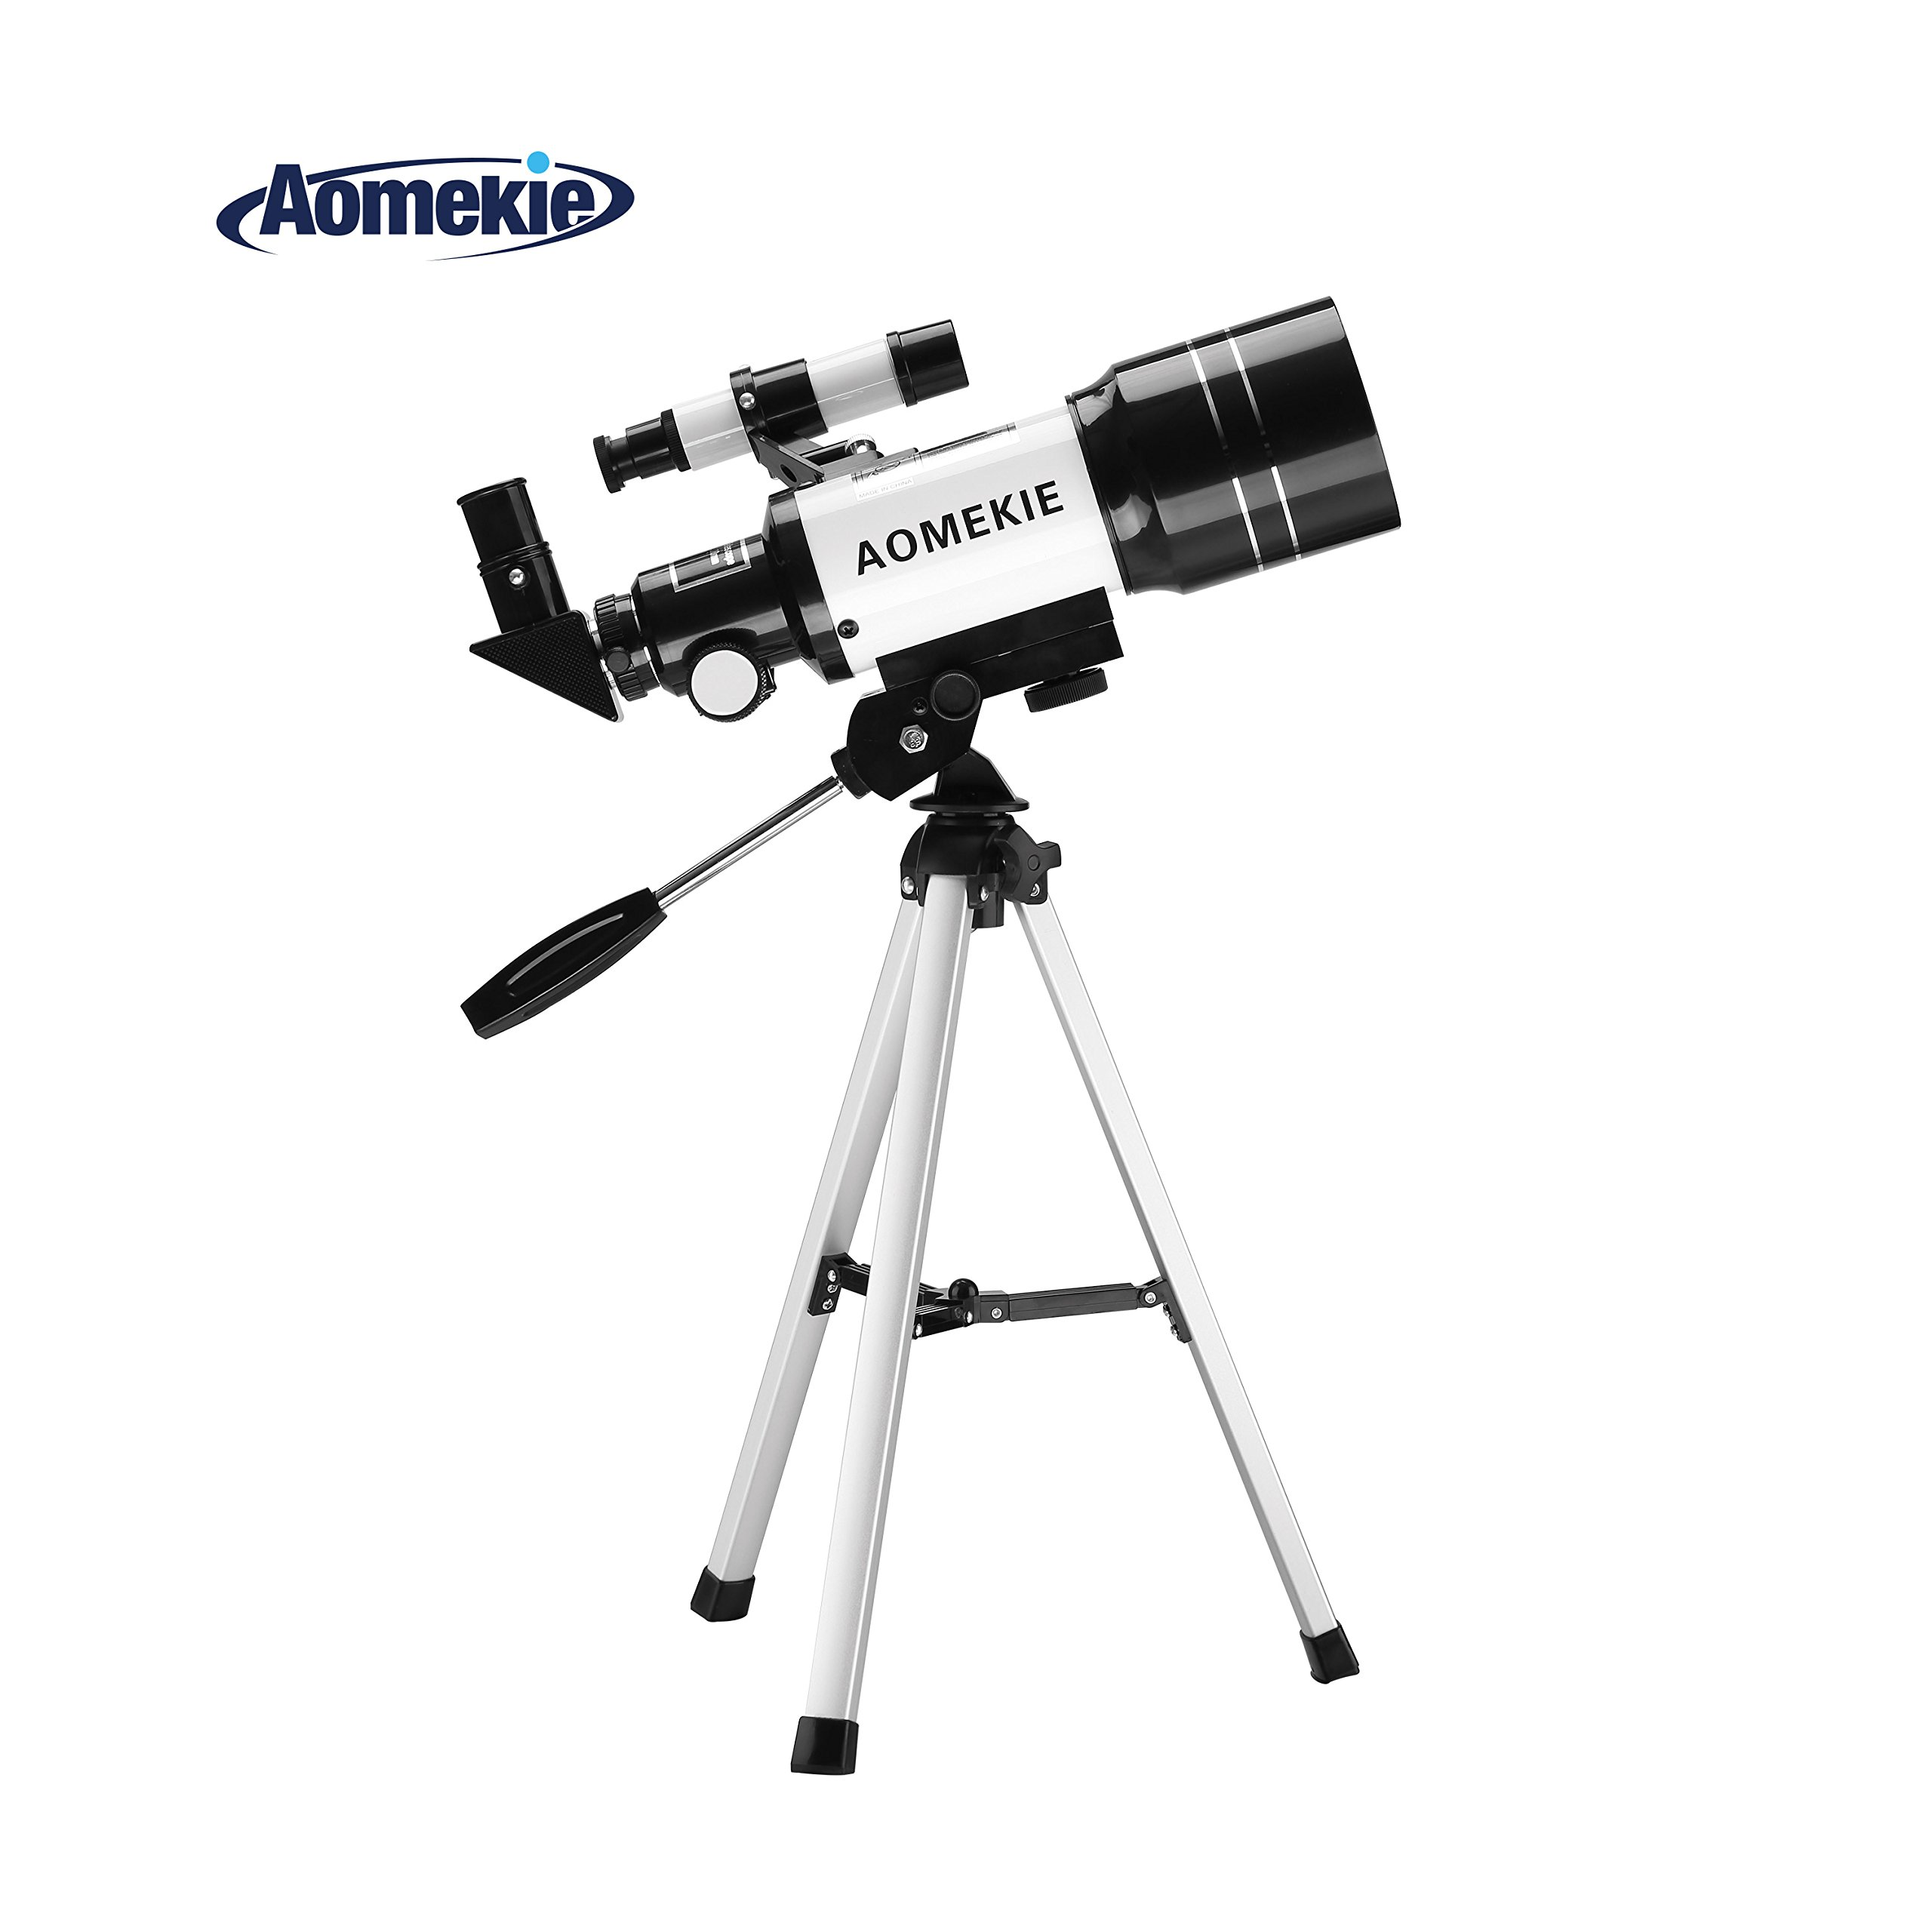 Aomekie 70mm Telescope for Astronomy Beginners and Kids Adults Travel Scope Refractor Telescopes with Adjustable Tripod 5X24 Finderscope 3X Barlow lens by AOMEKIE